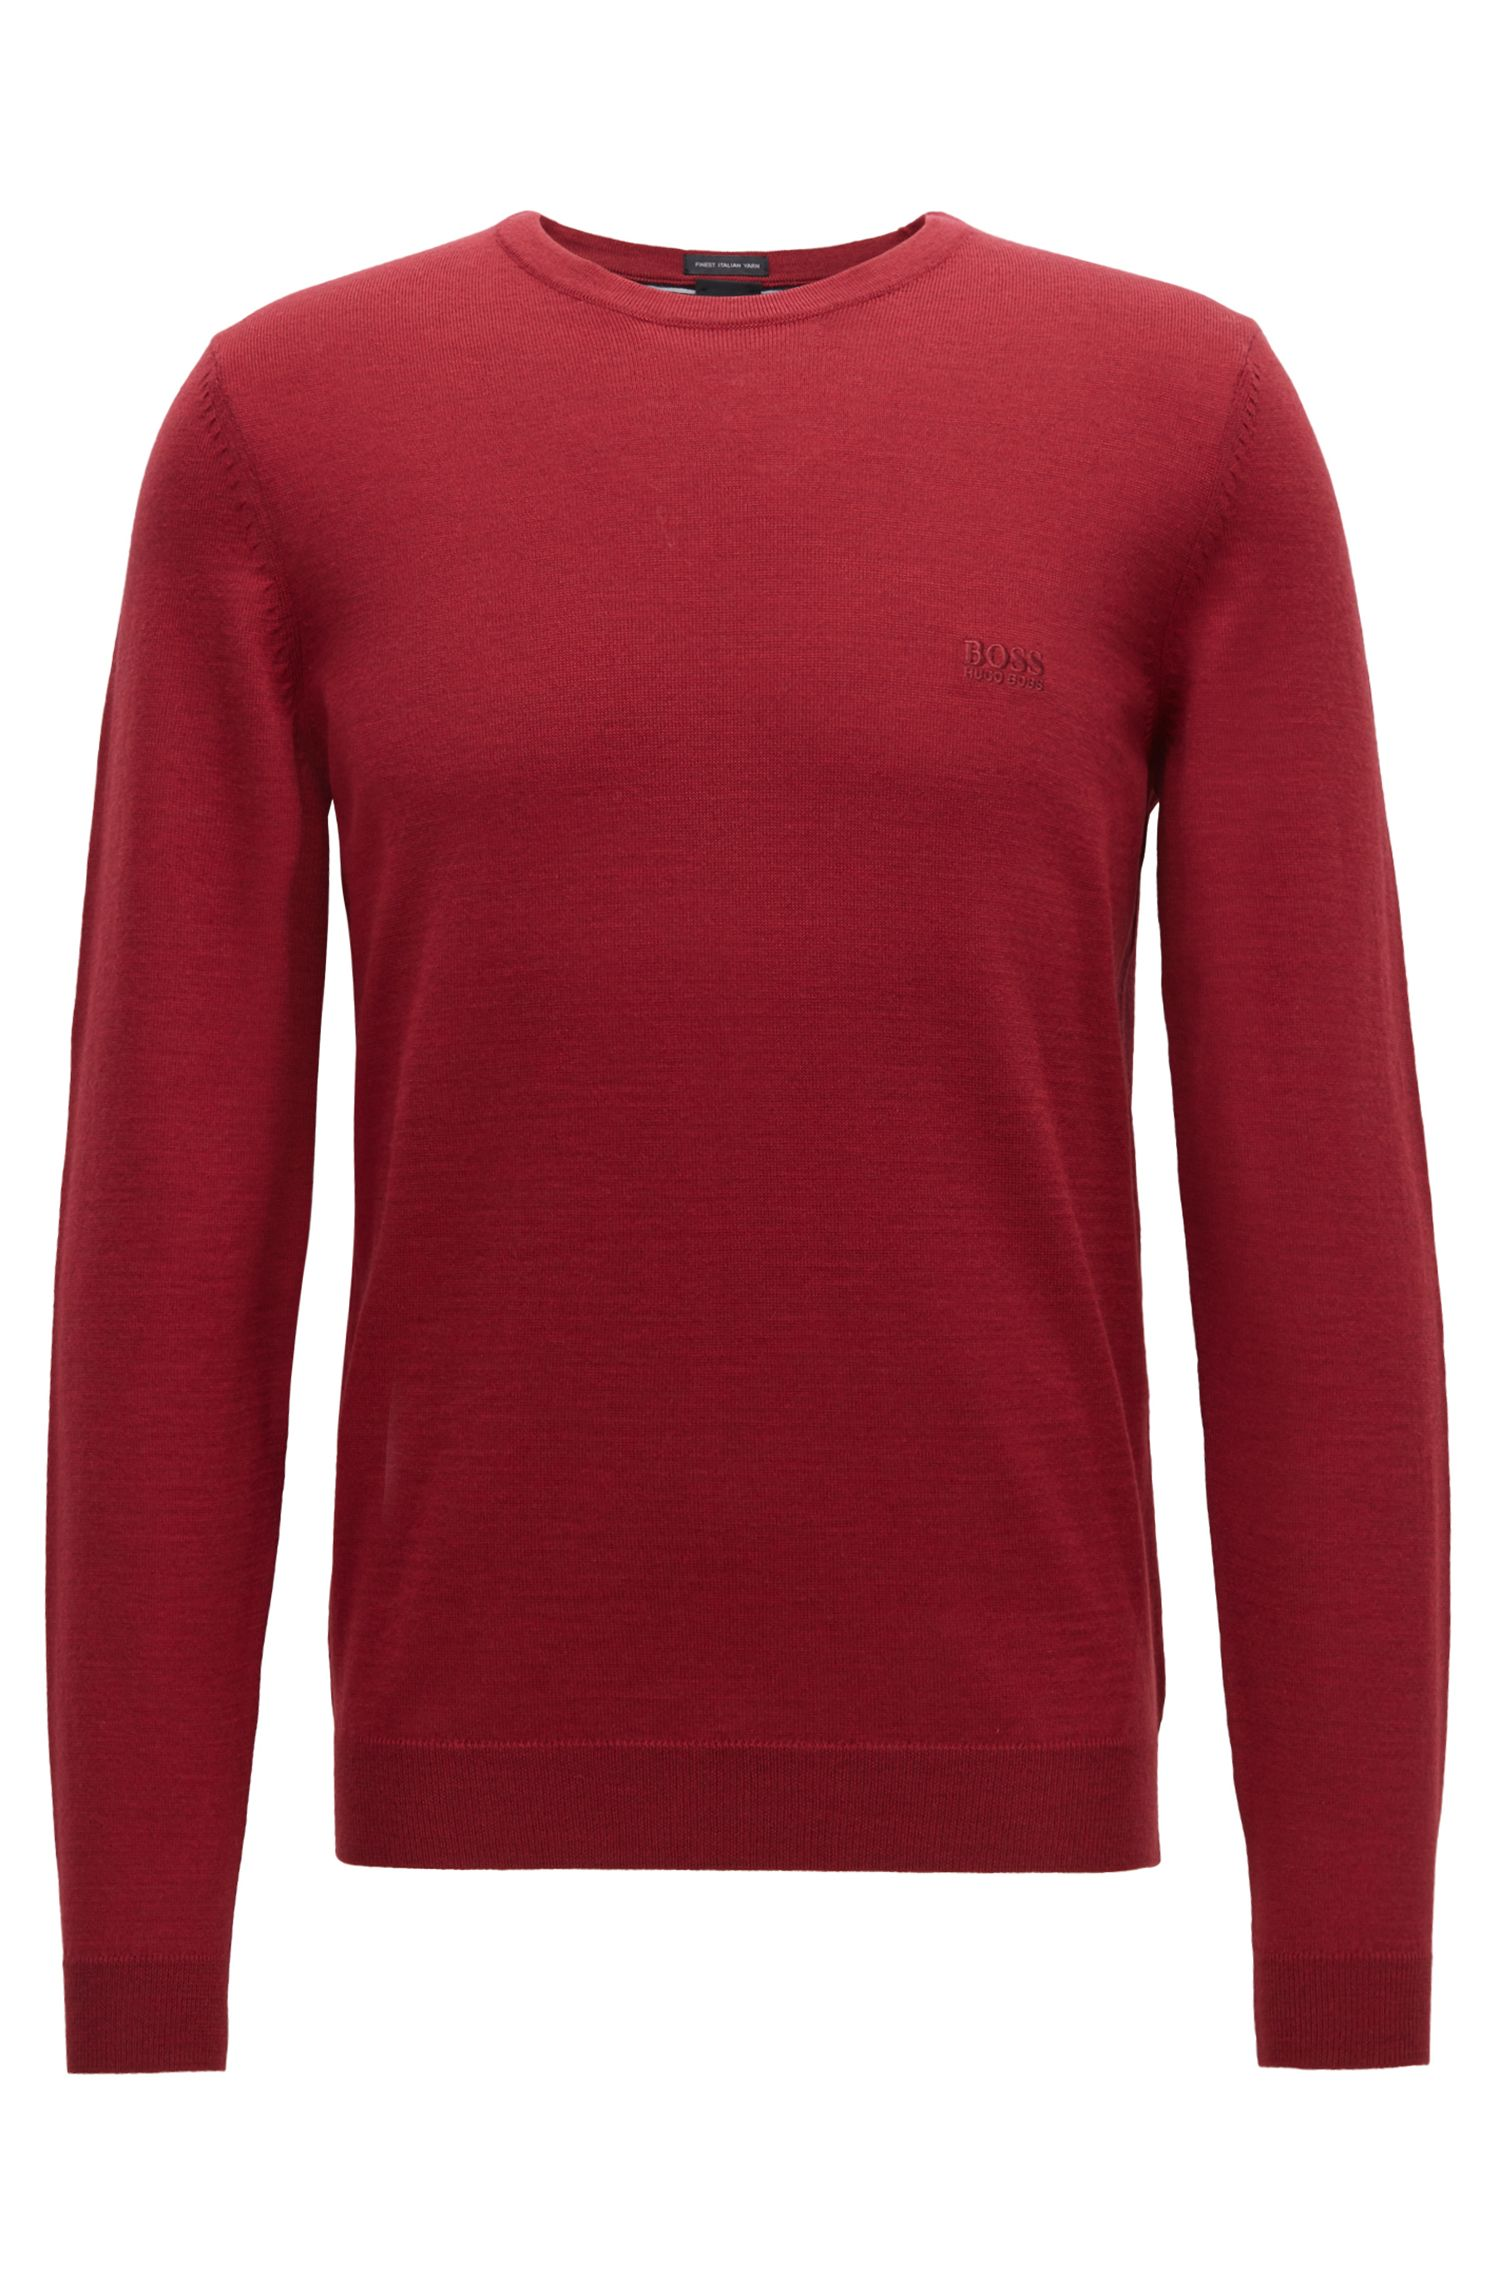 Crew-neck sweater in virgin wool jersey, Dark Red